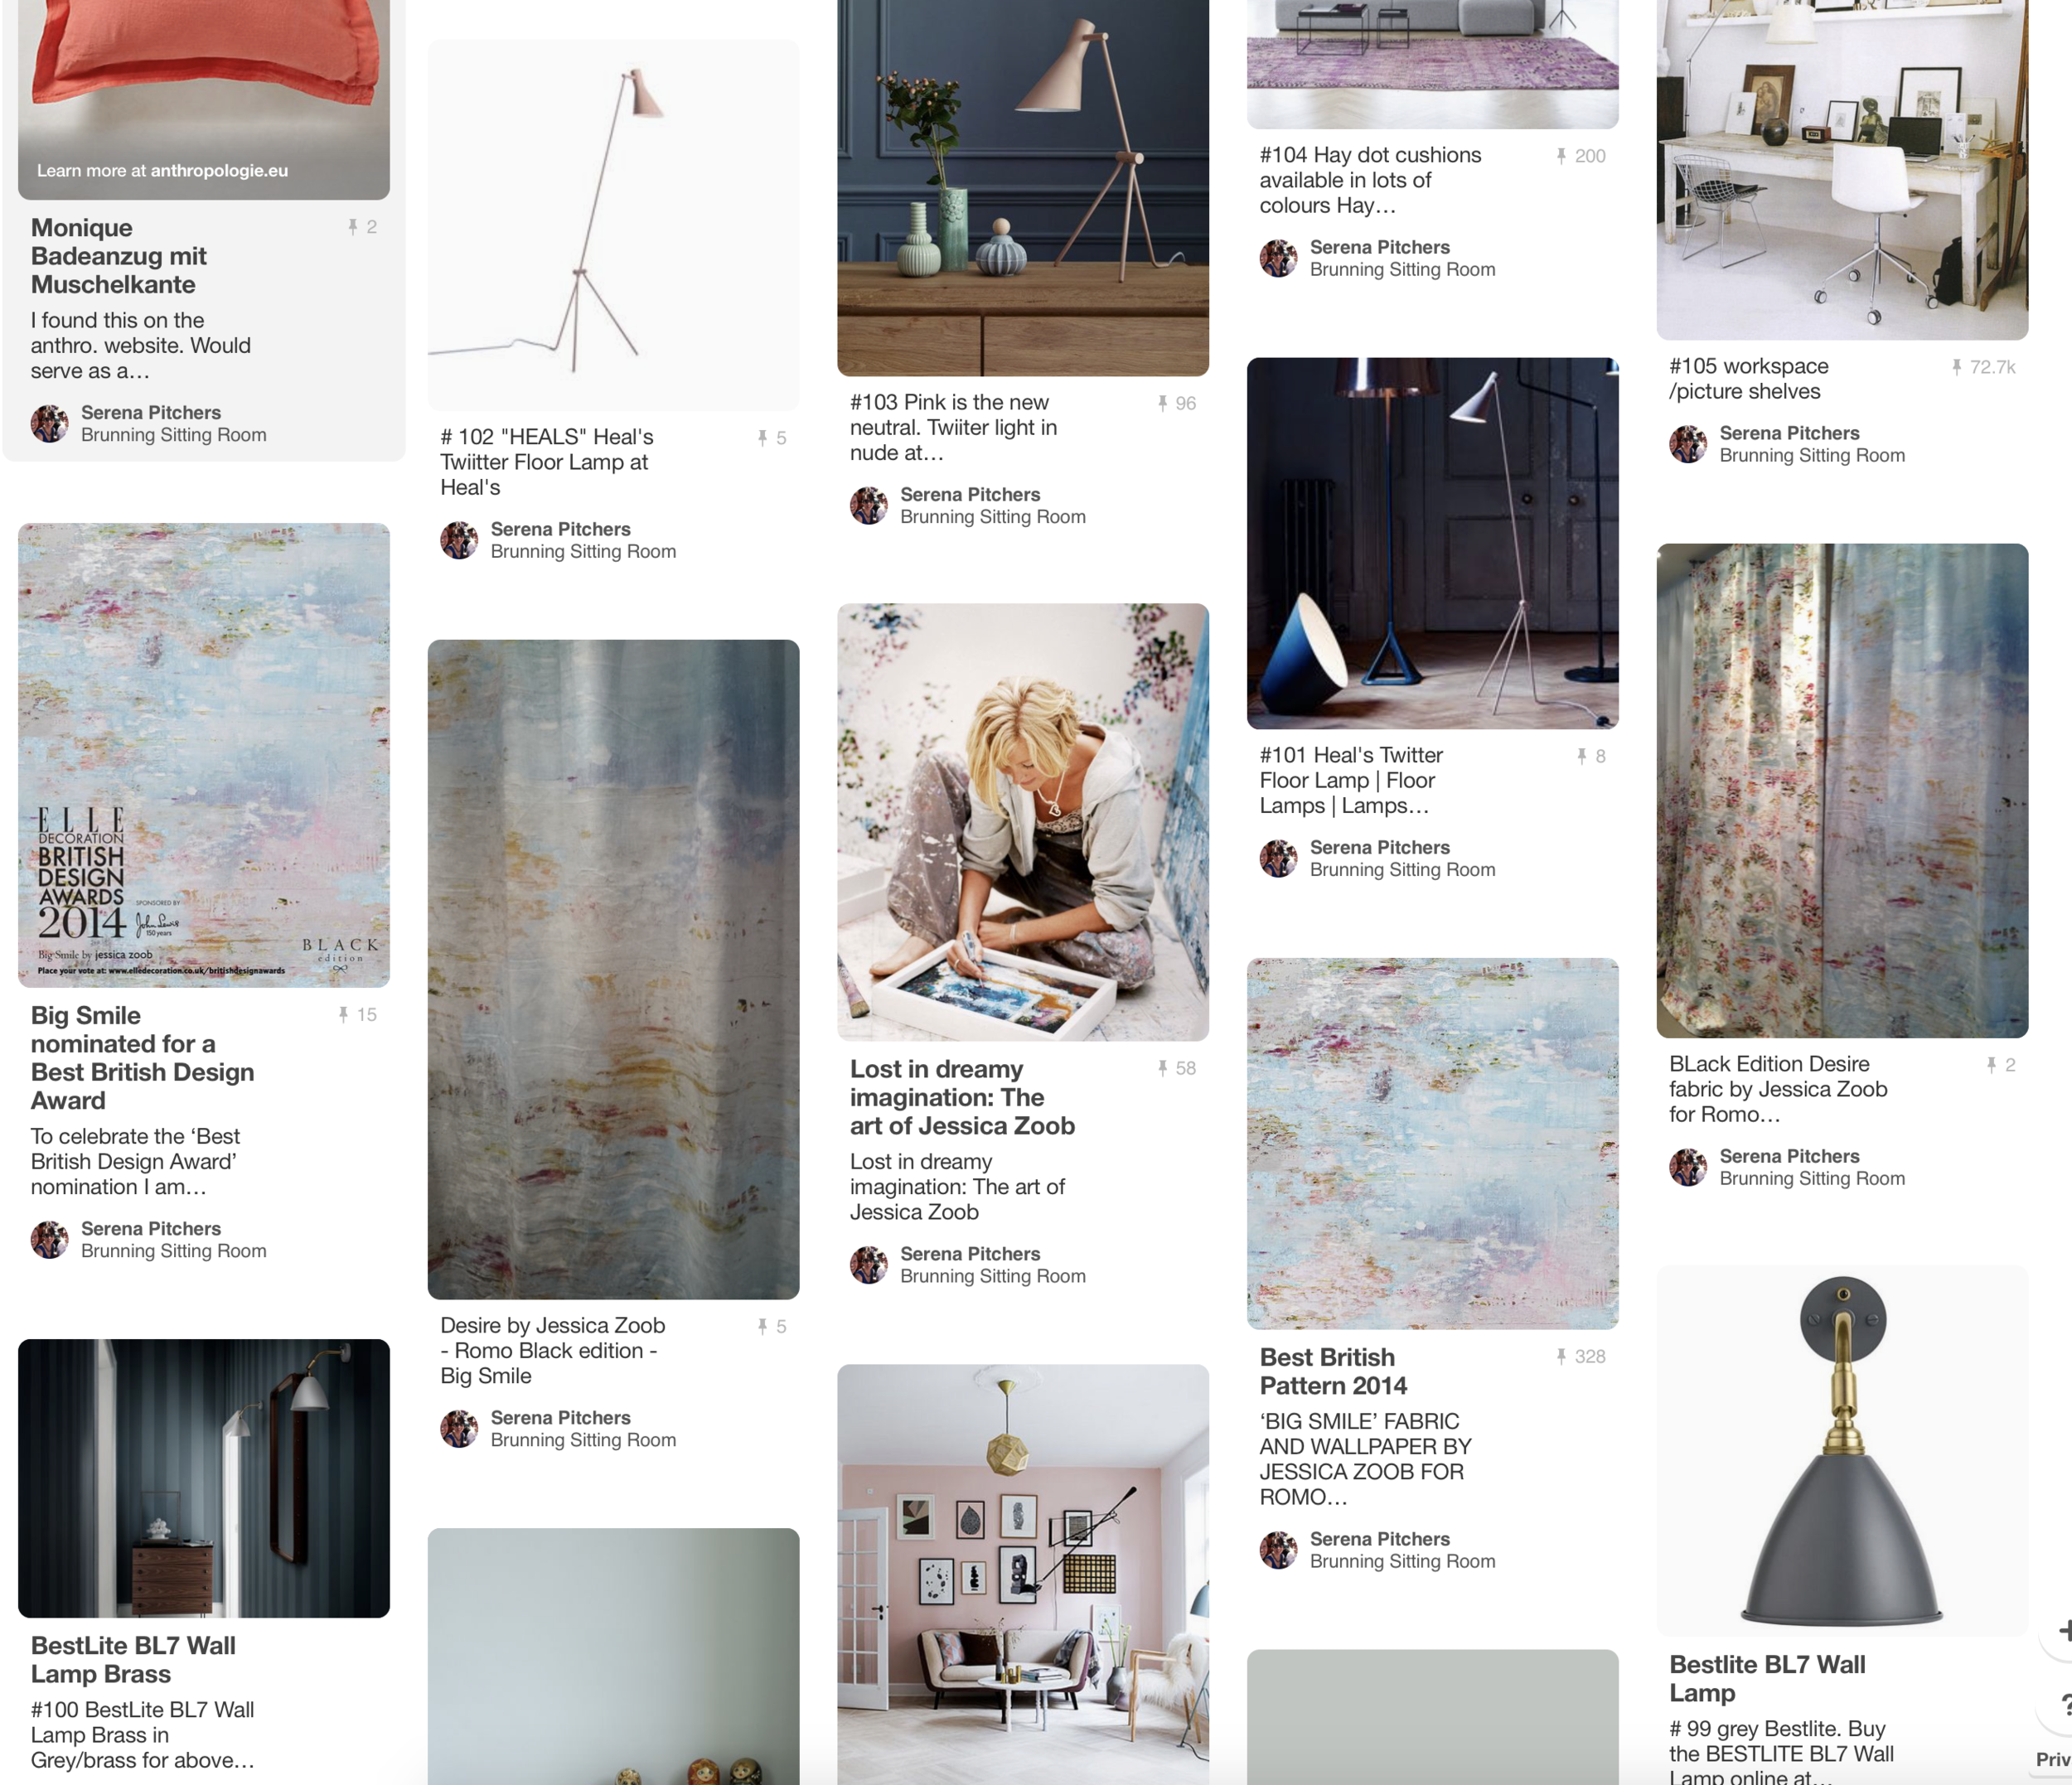 Her very own Pinterest board.